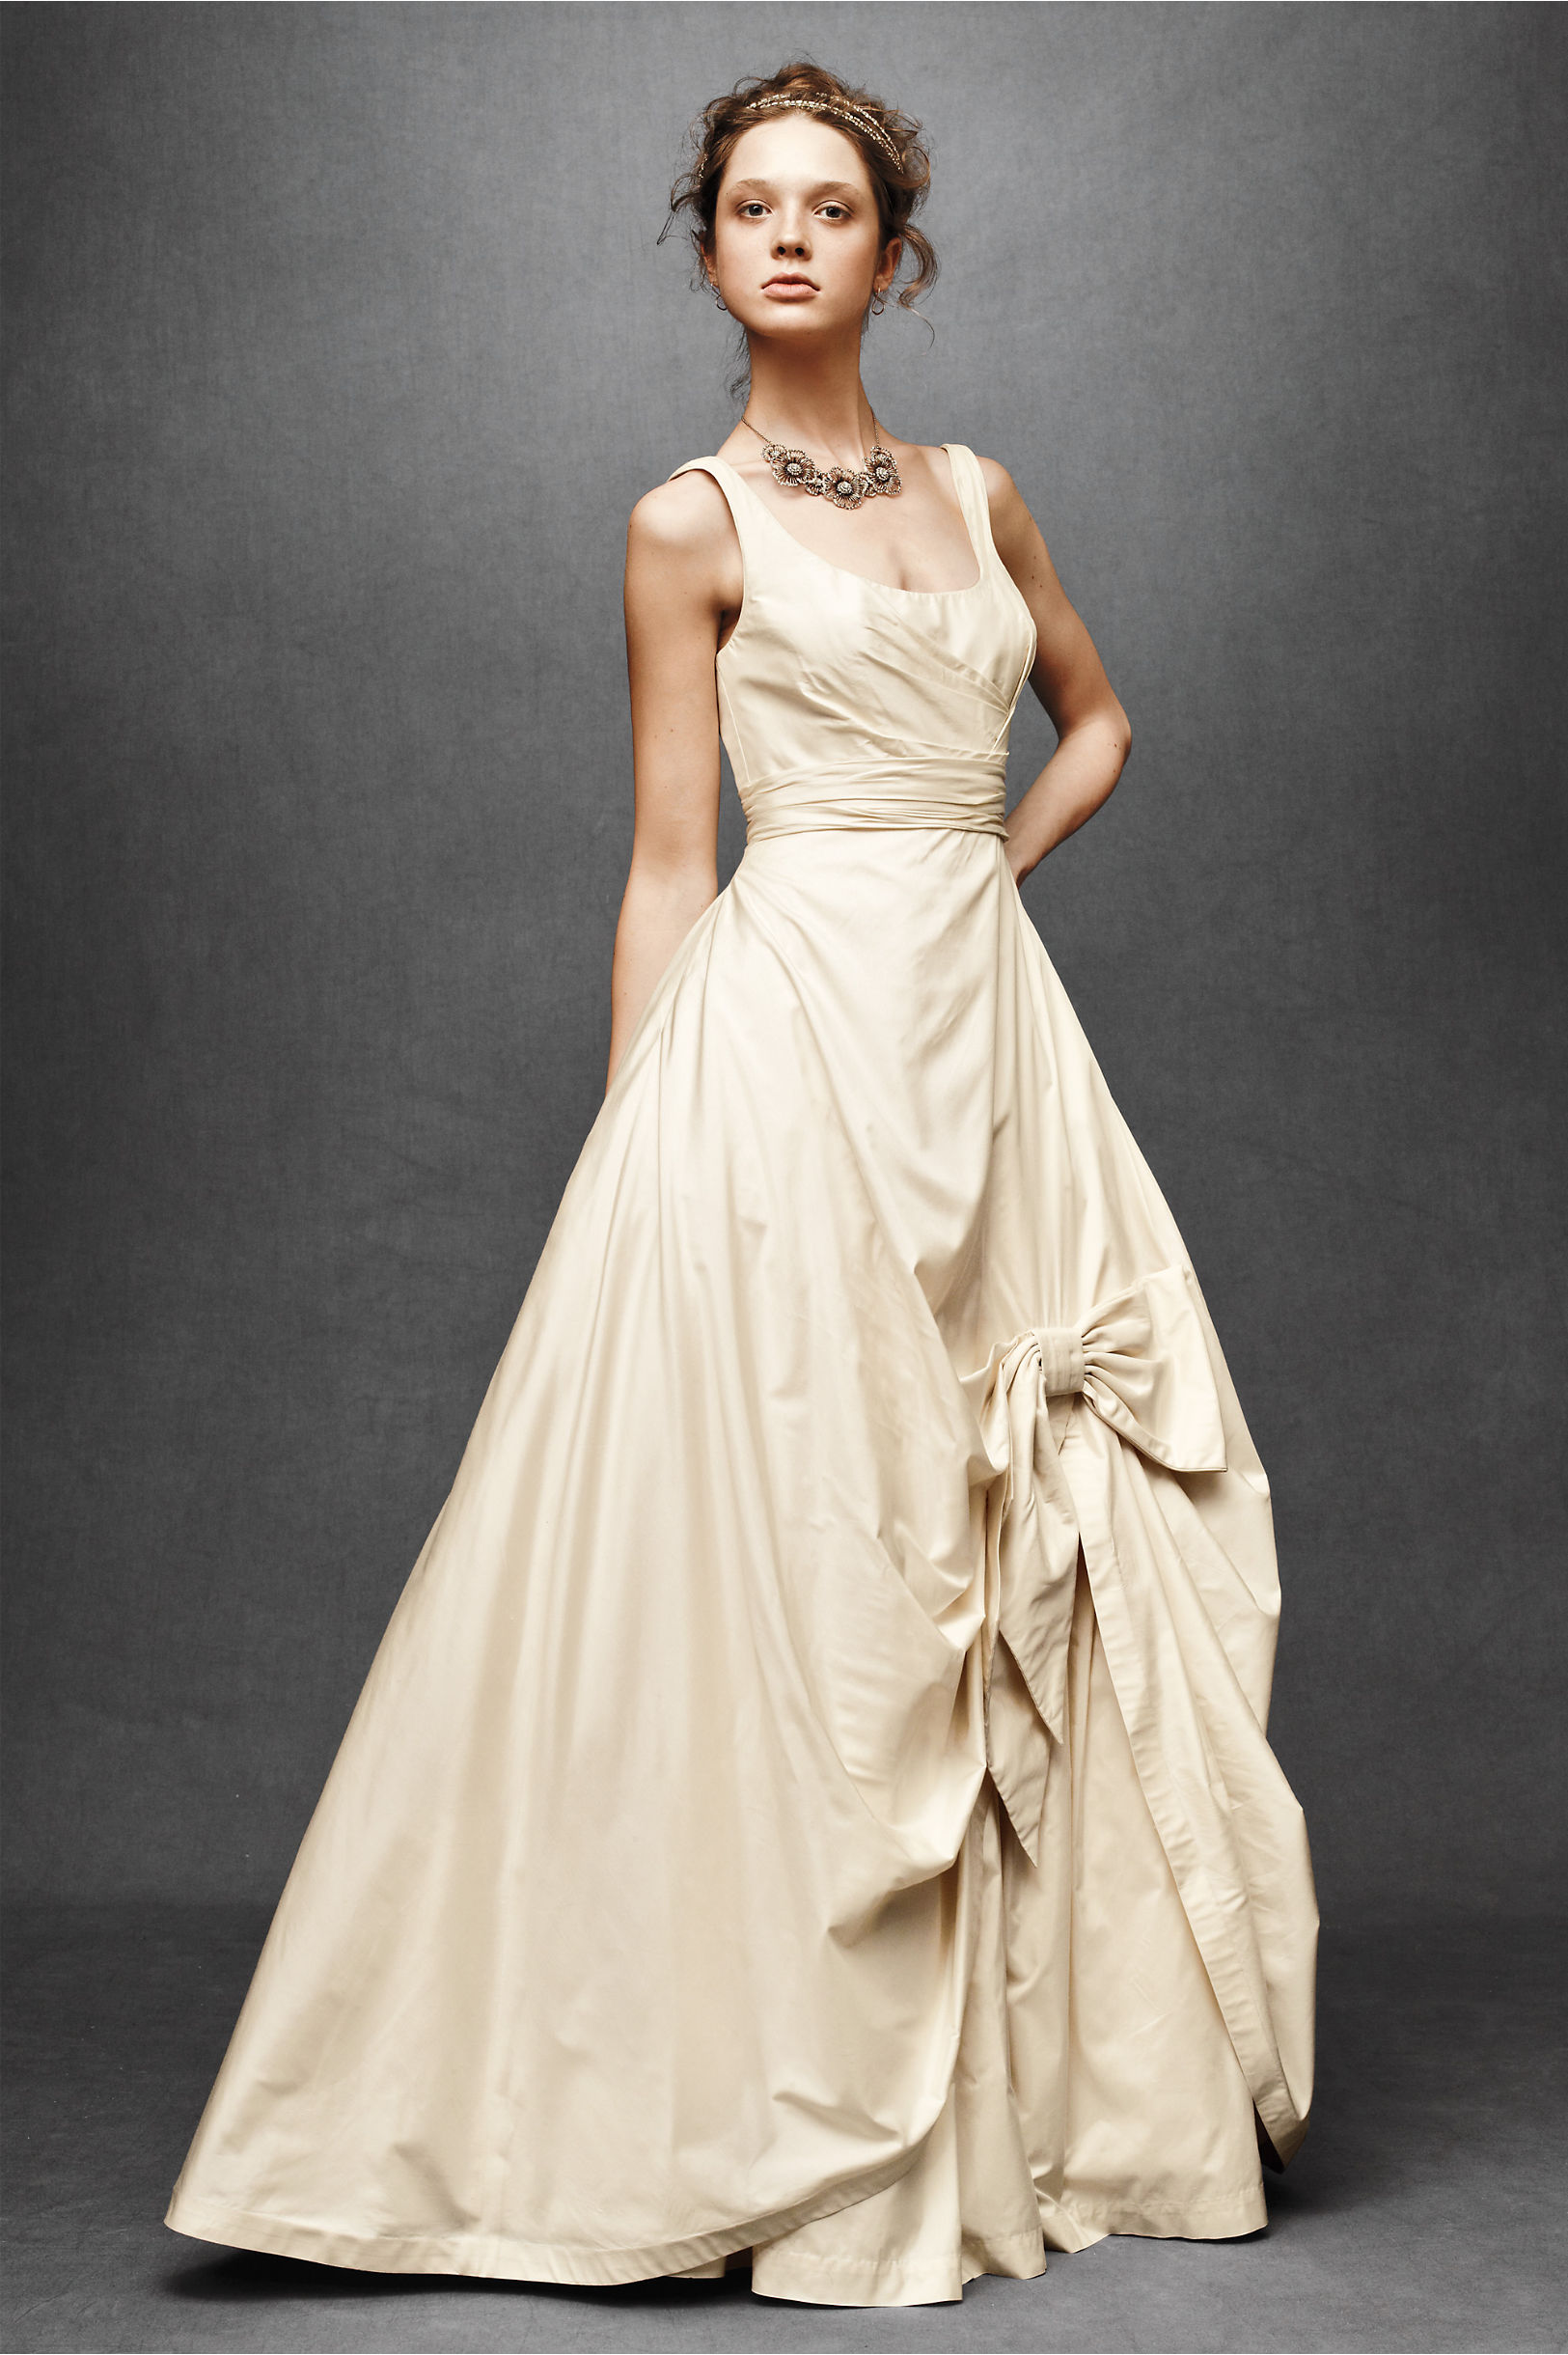 Sweeping Taffeta Ball Gown in Sale | BHLDN